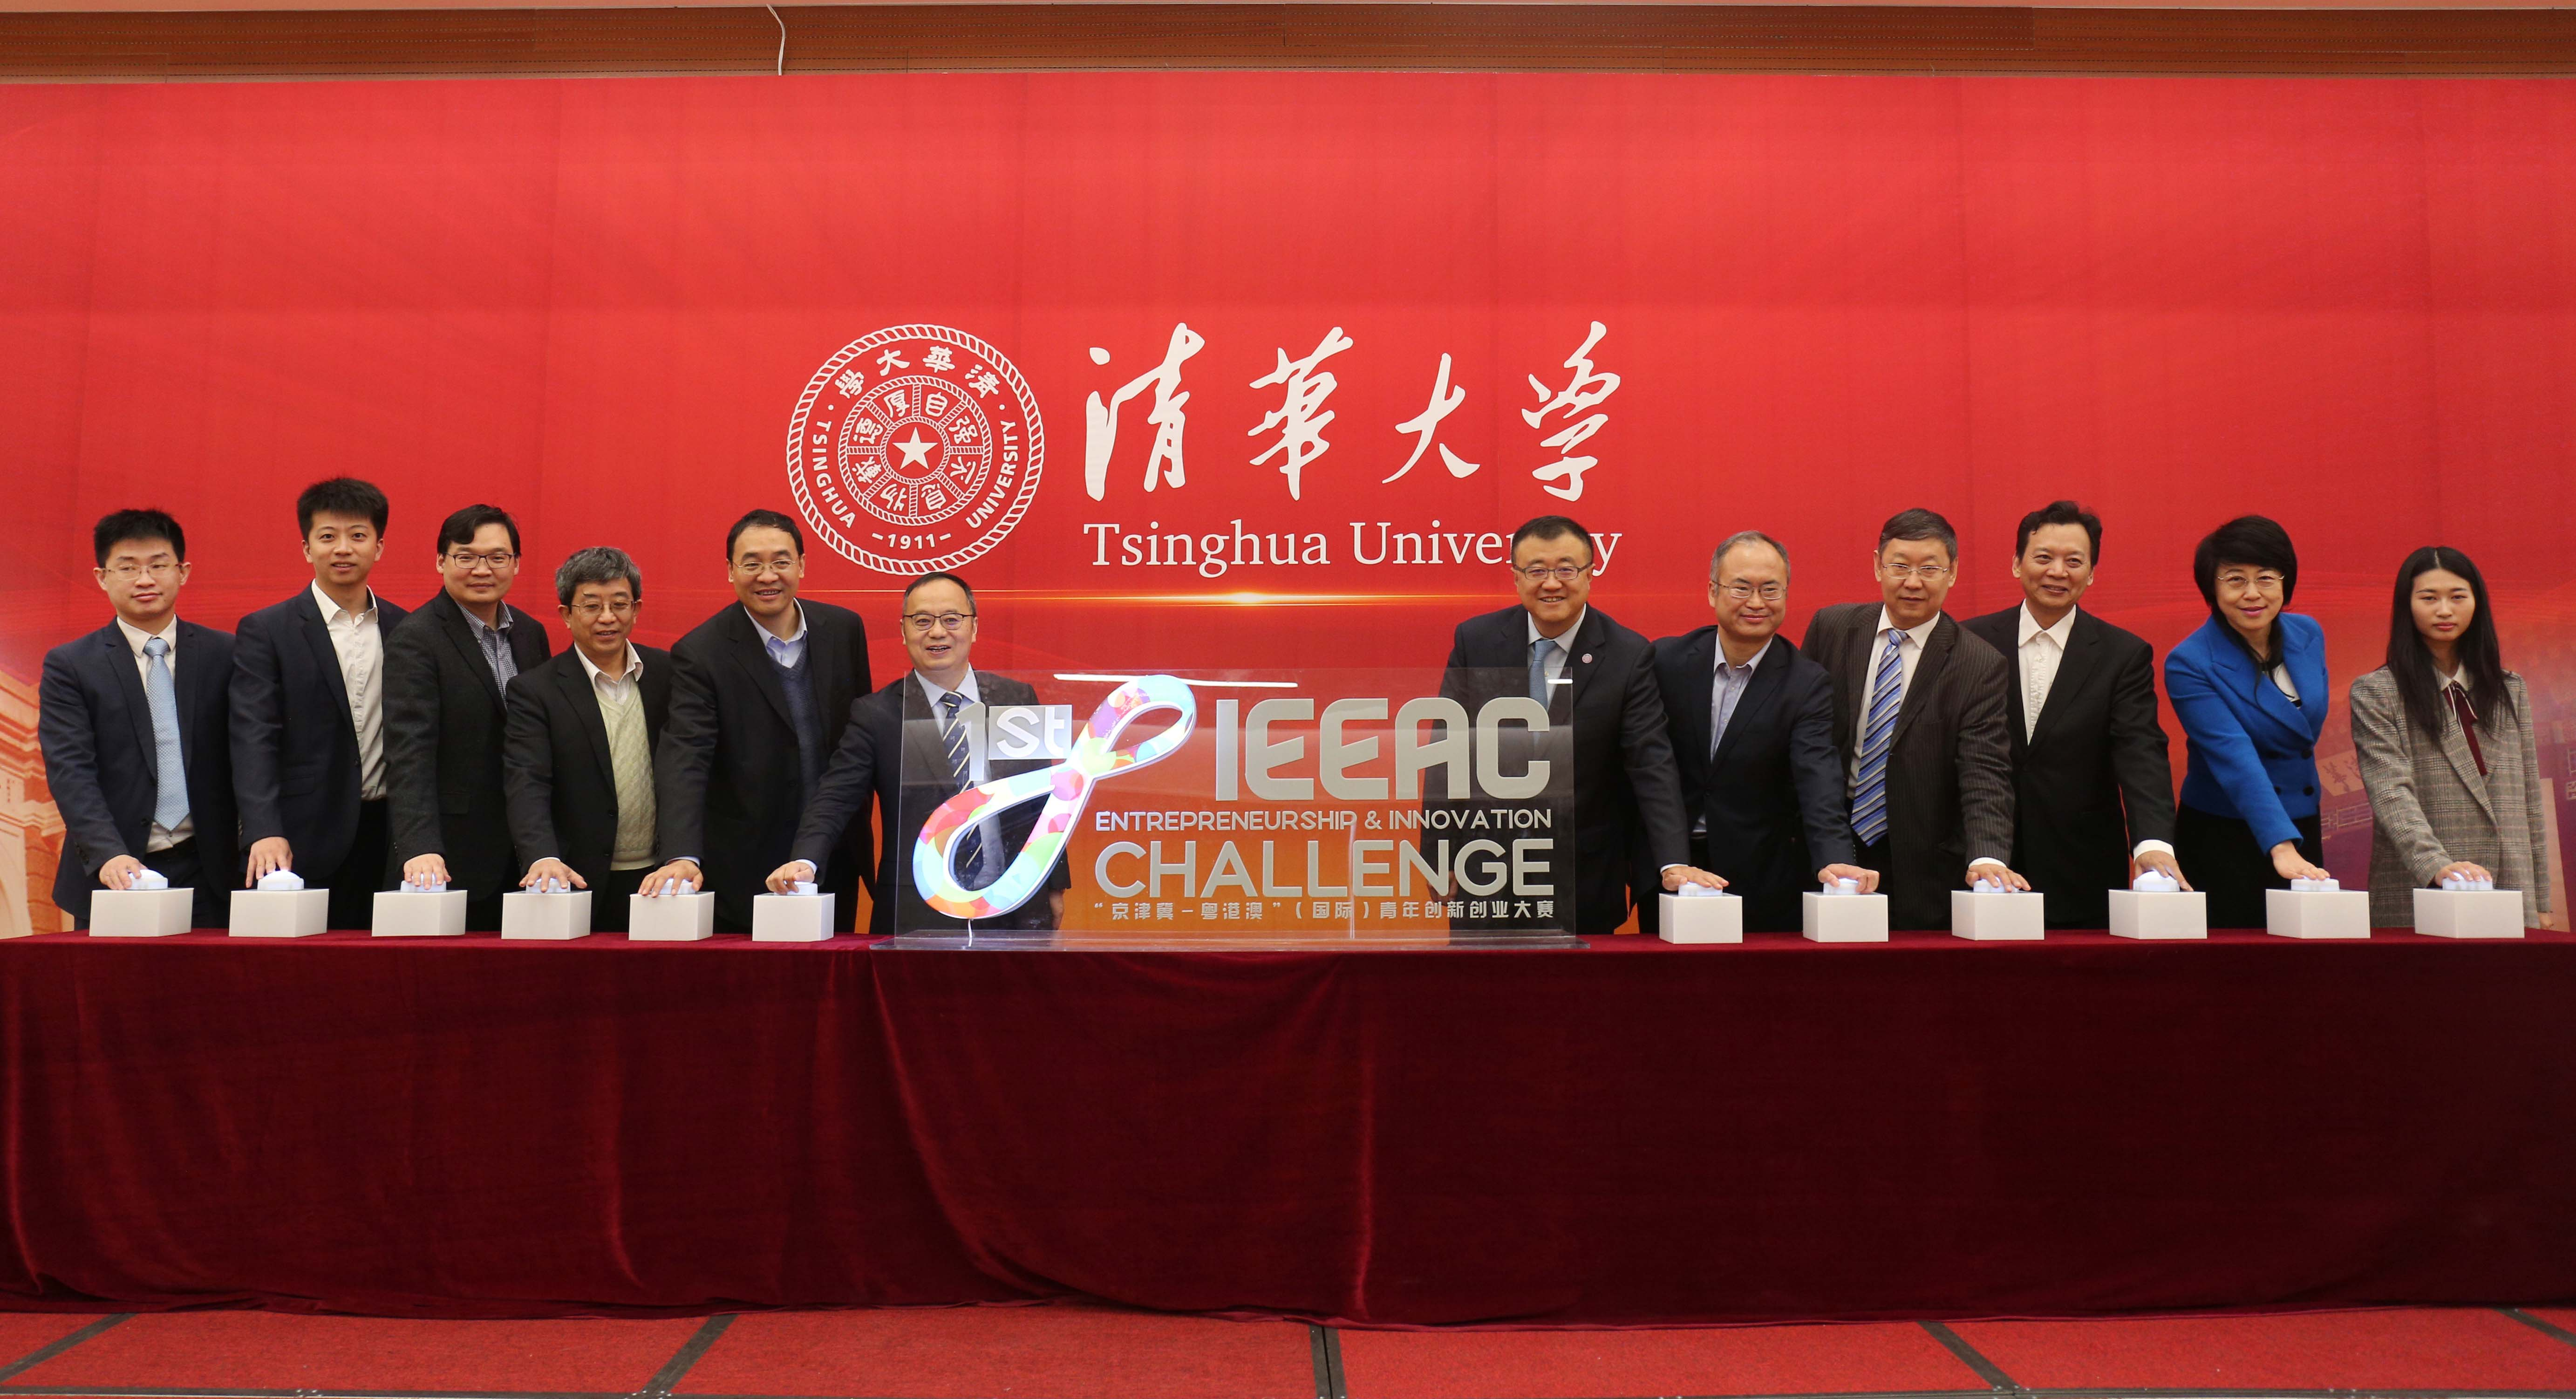 The launch ceremony for an innovation and entrepreneurship competition for young adults from different parts of China